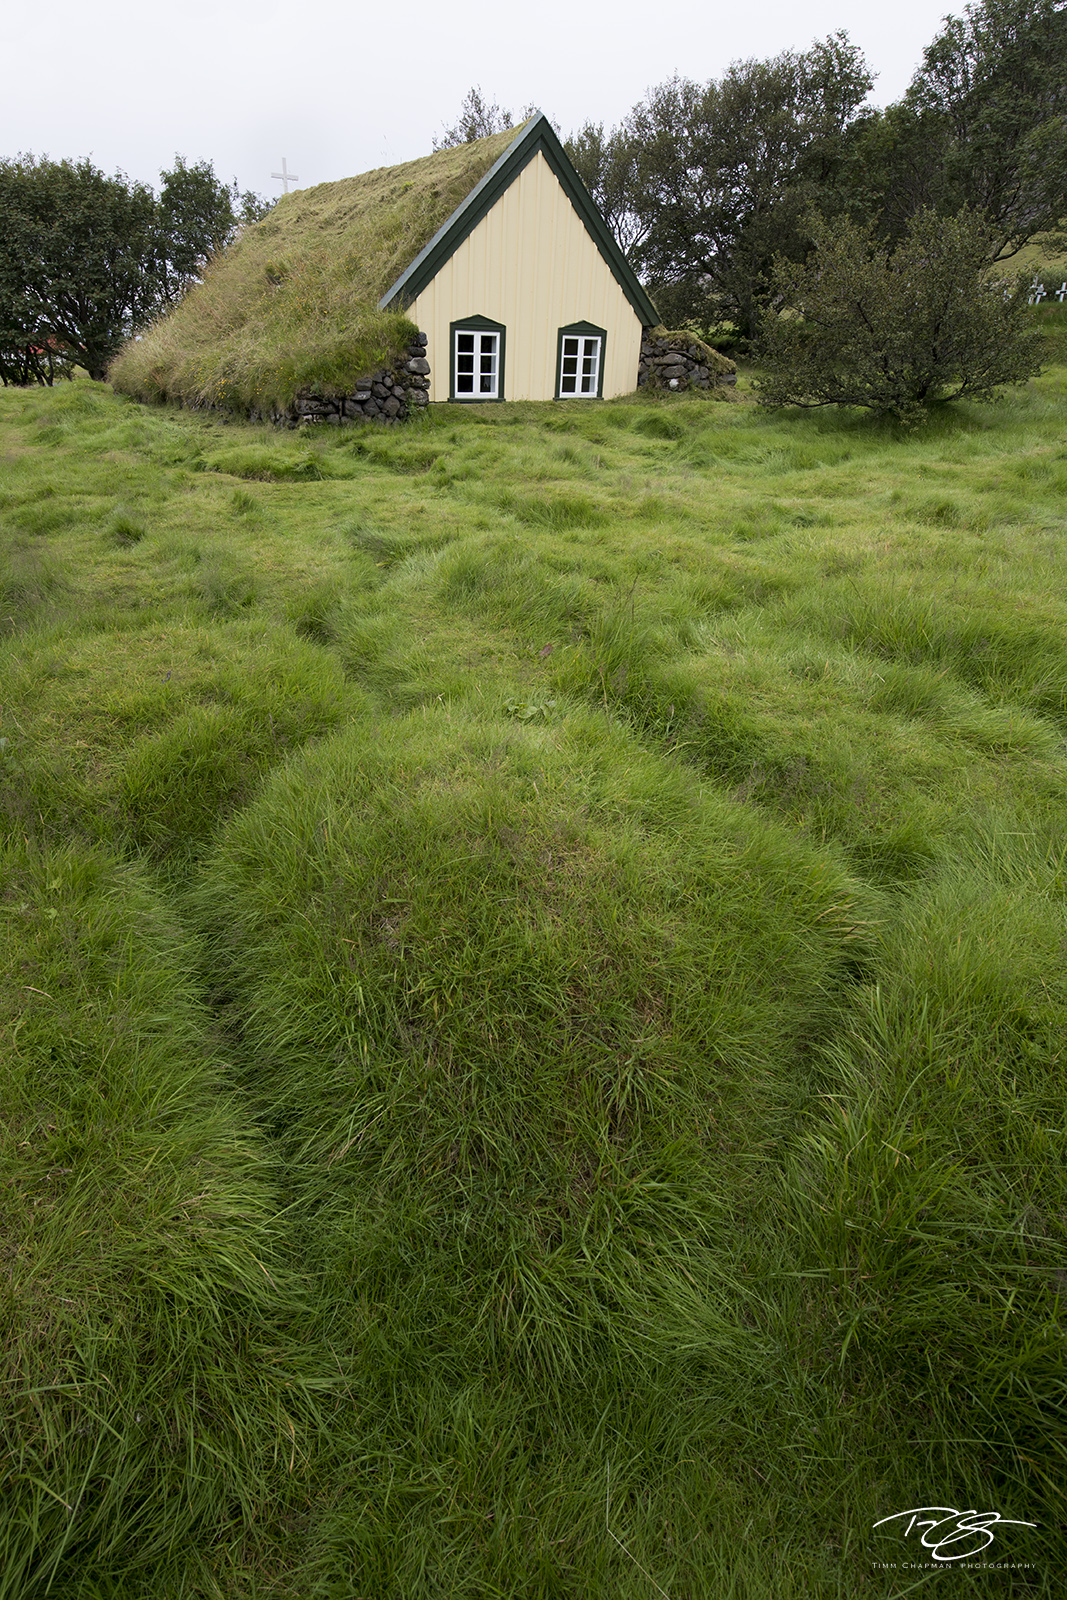 iceland, church, chapel, cathedral, place of worship, turf building, turf house, turf church, hofskirkja, hobbit house, photo